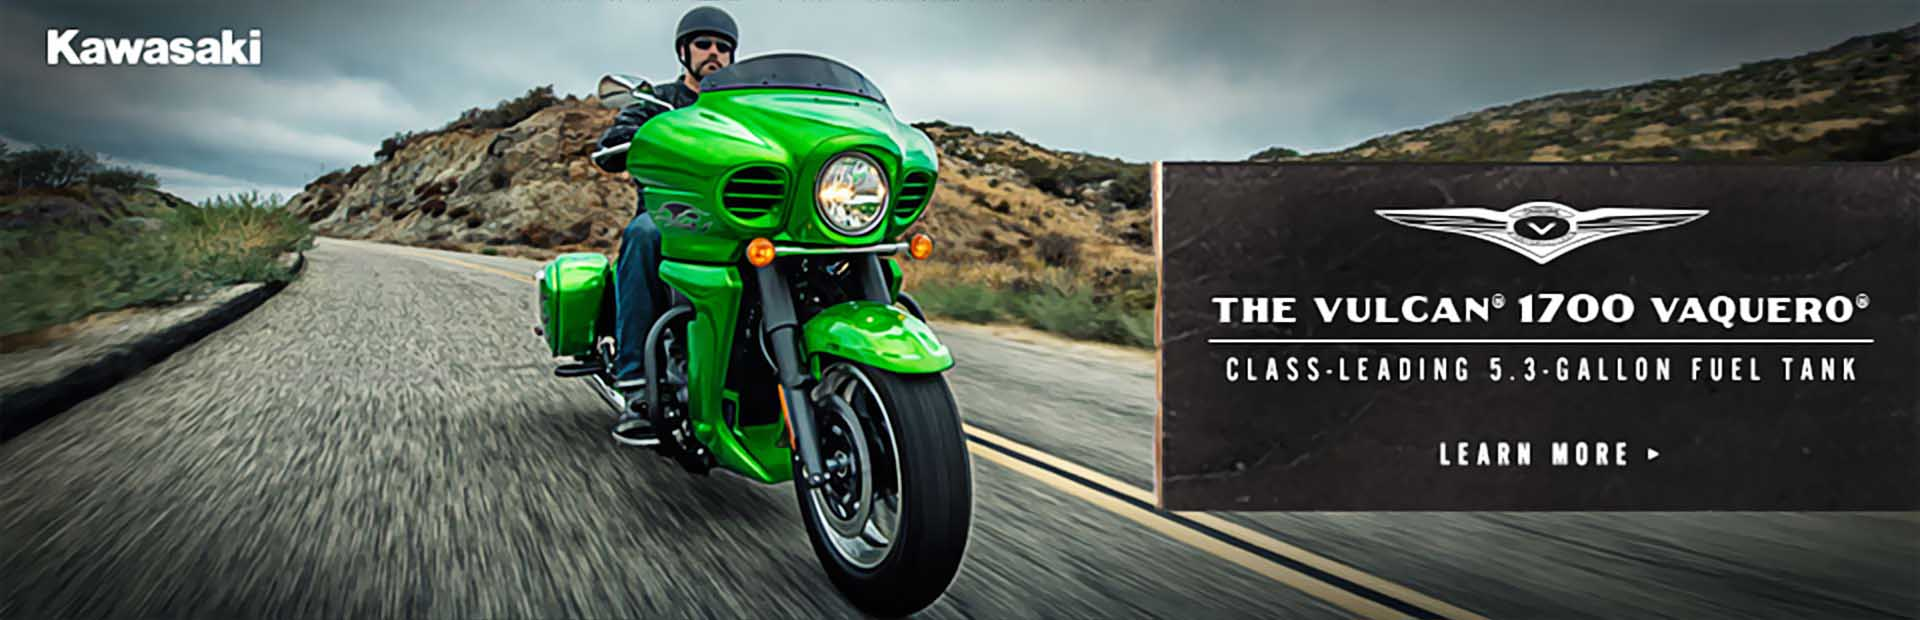 The Kawasaki Vulcan 1700 Vaquero: Click here to view the model.